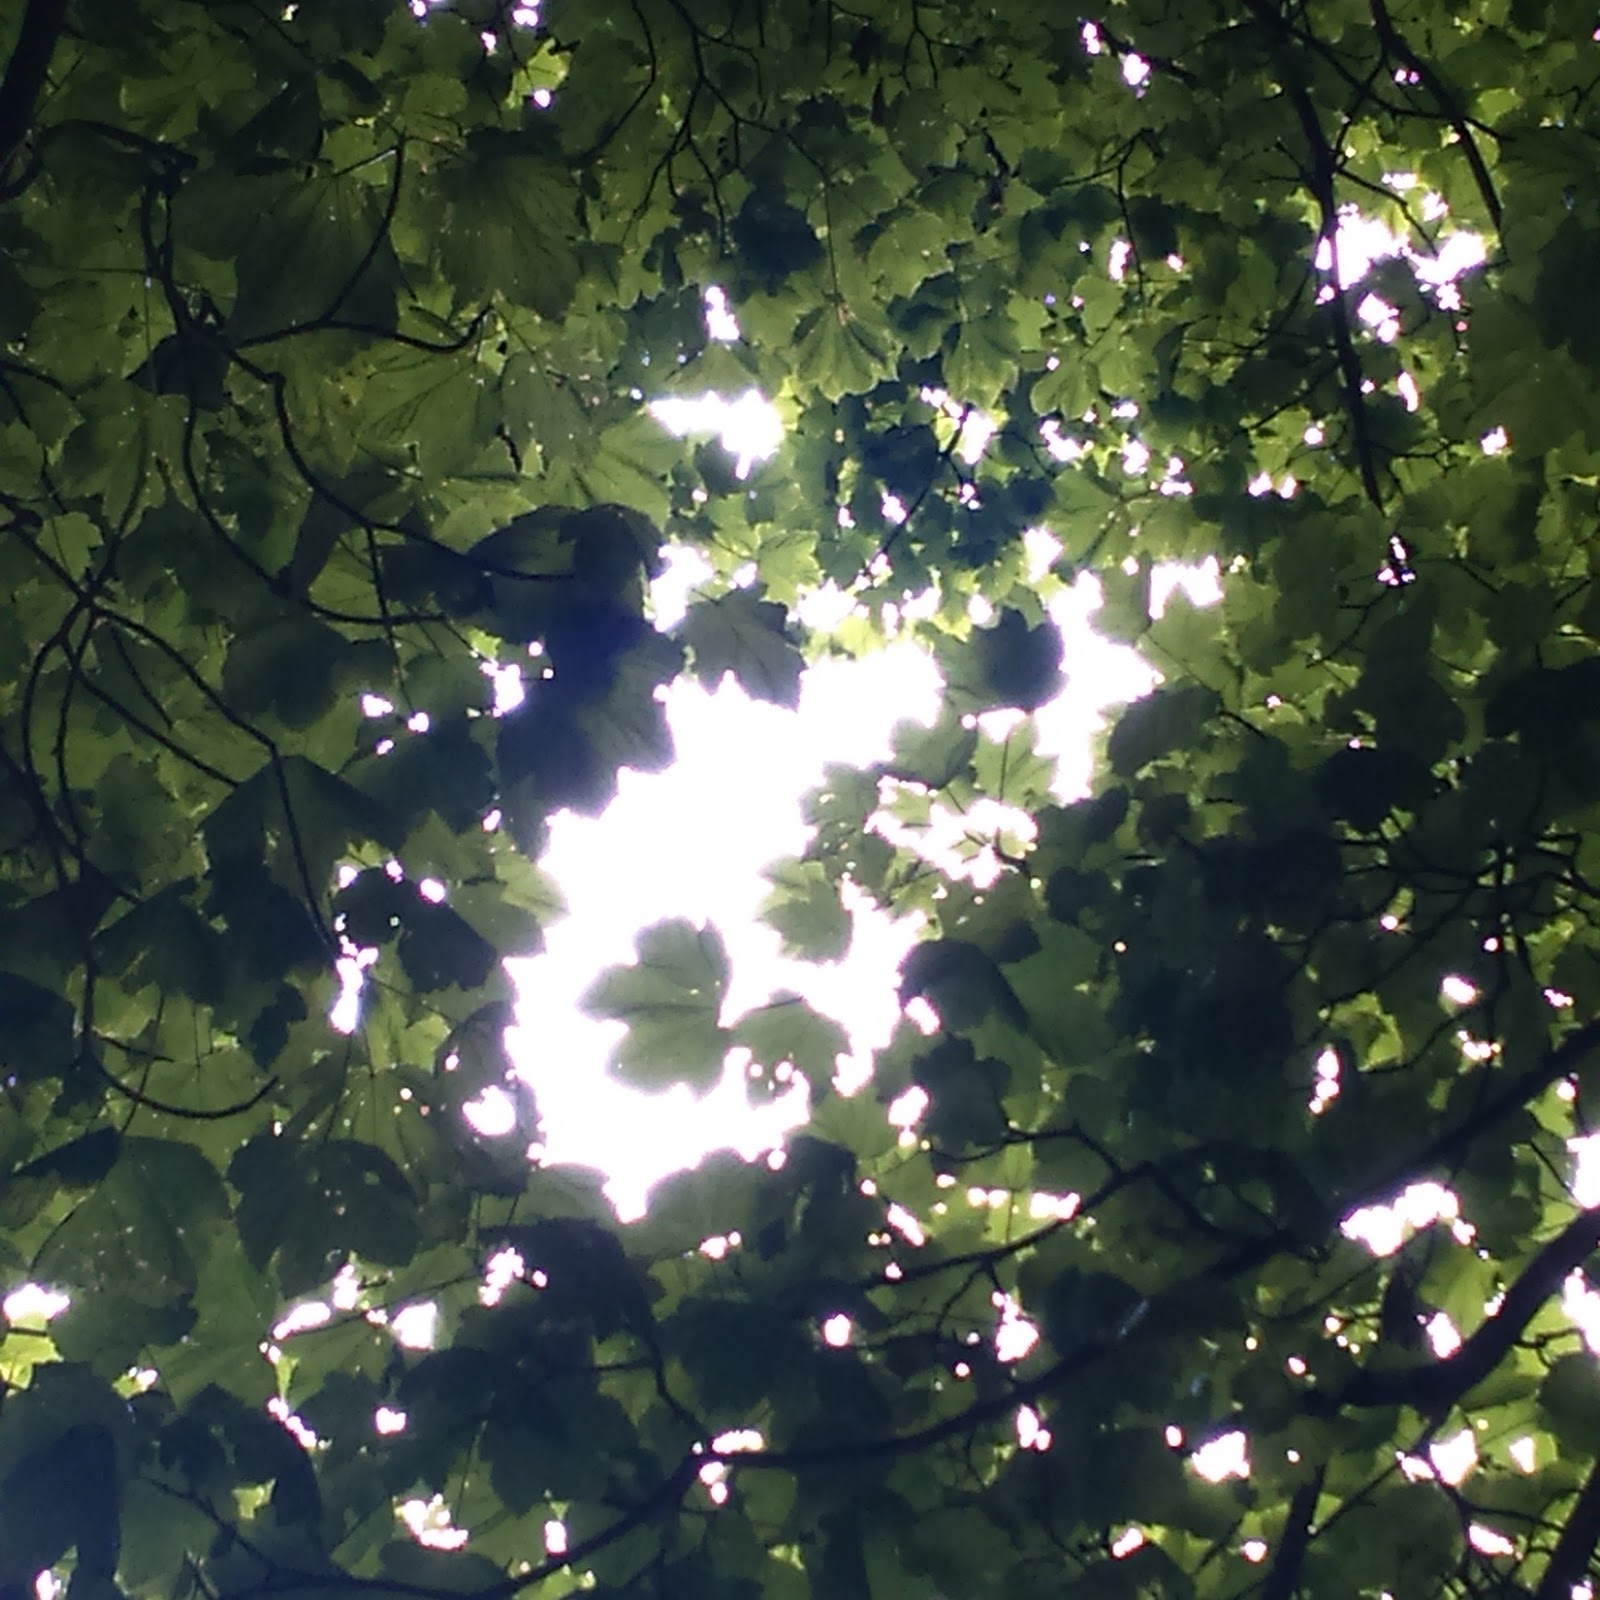 Sunlight through leafy tree canopy